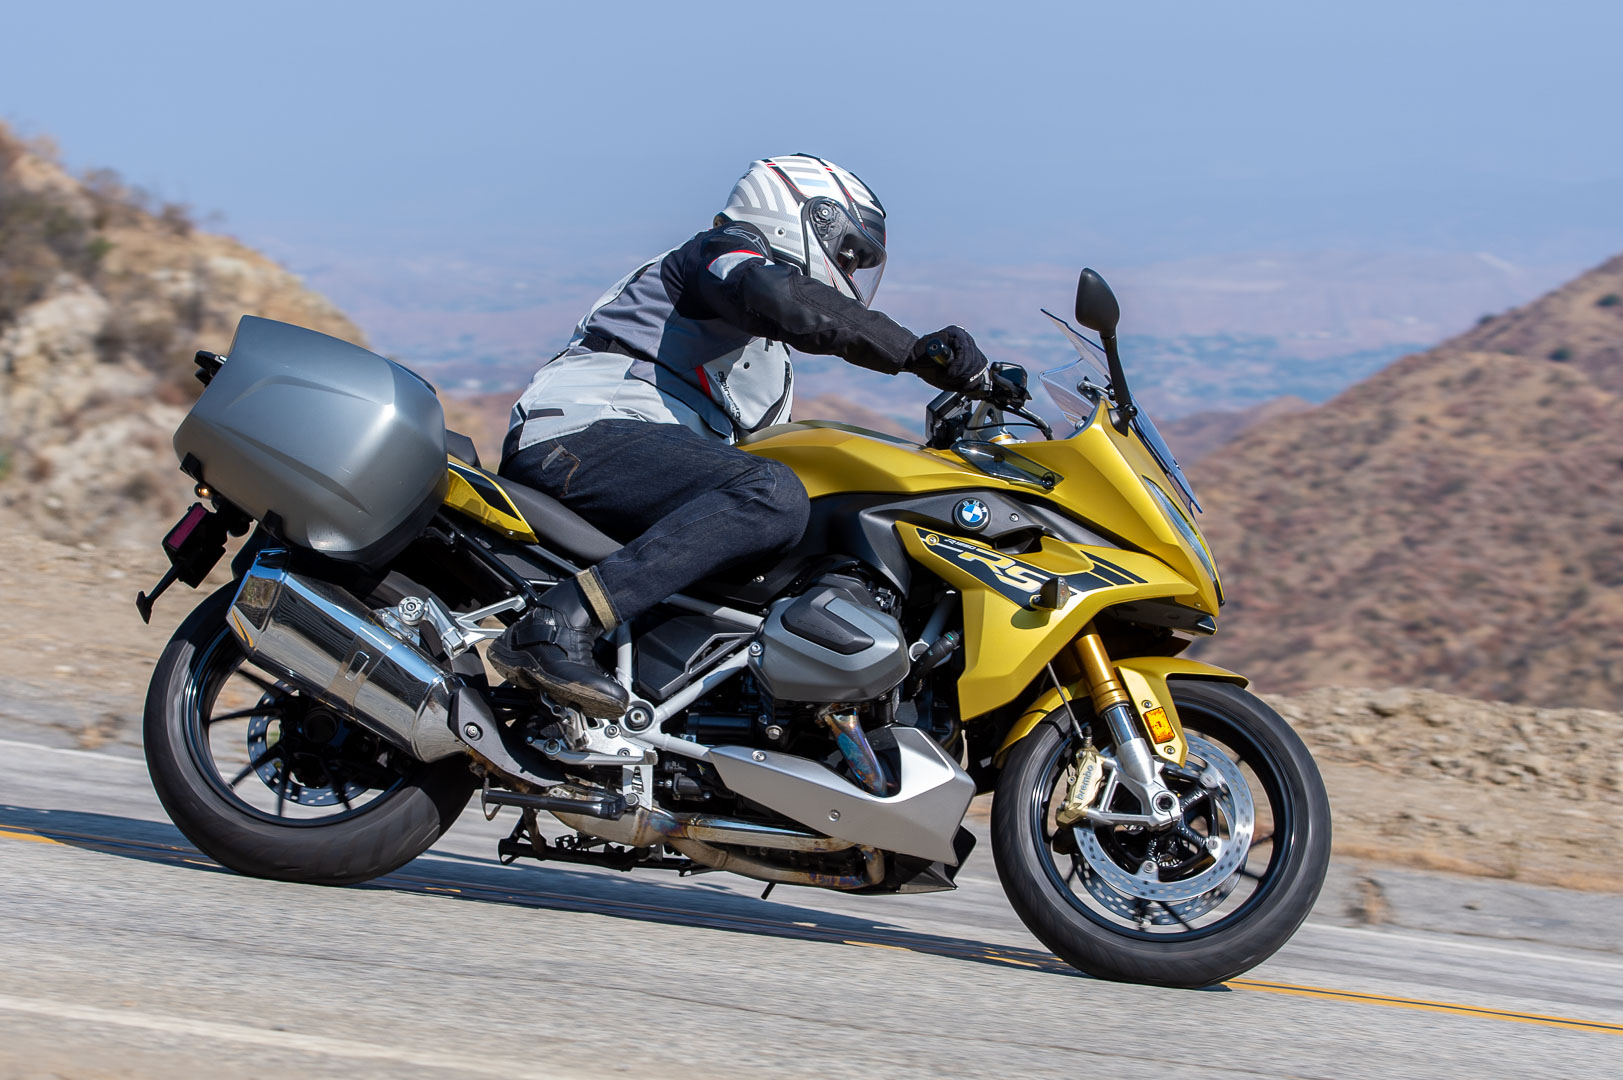 2020 BMW R 1250 RS Review: Specs